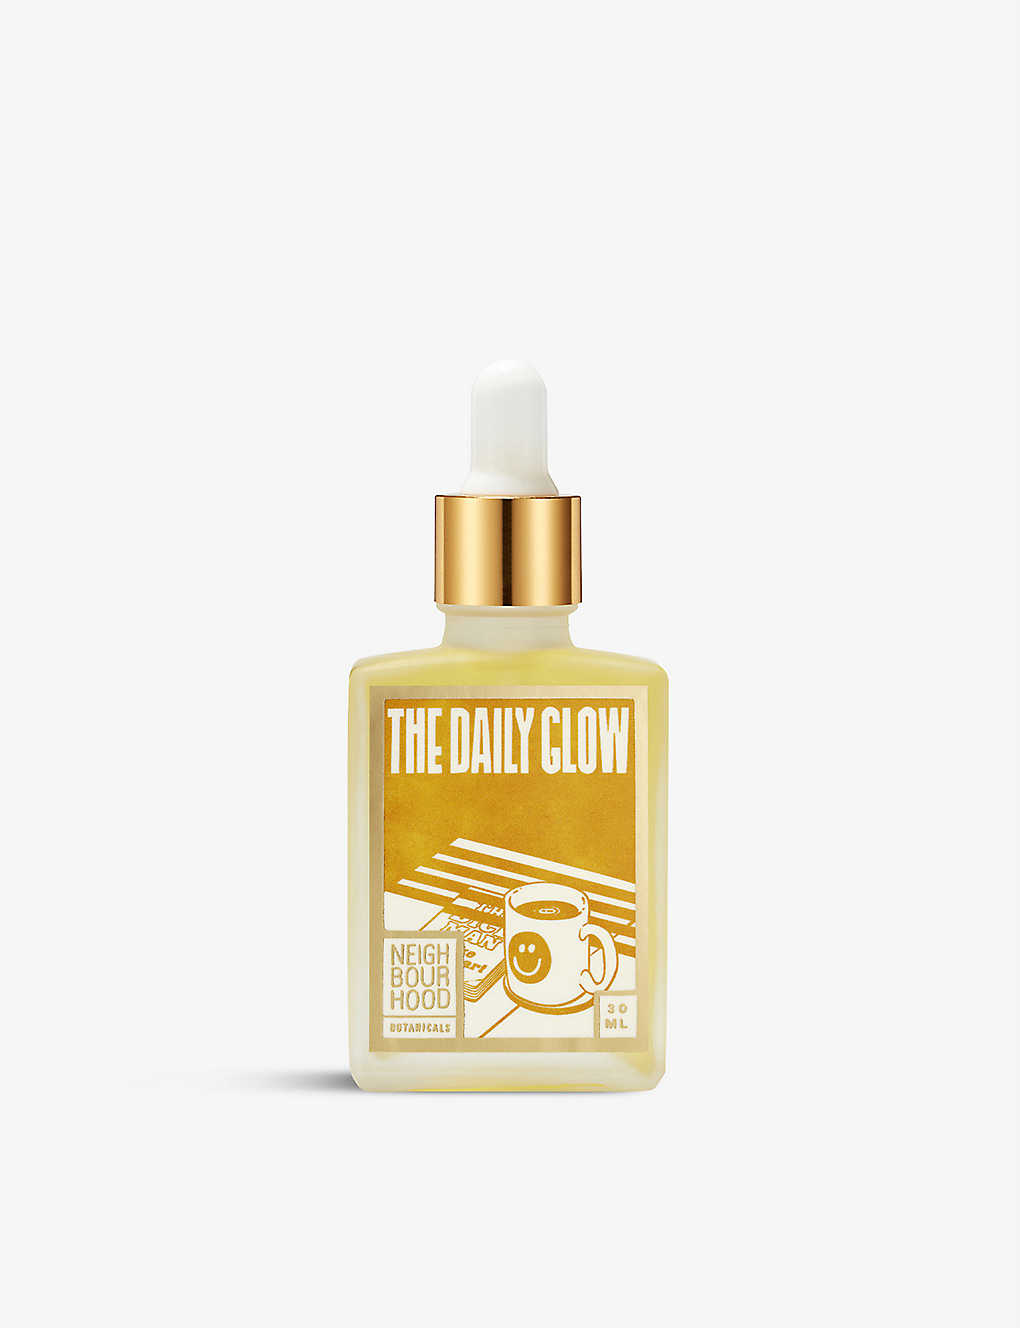 NEIGHBOURHOOD BOTANICALS: The Daily Glow facial oil 30ml